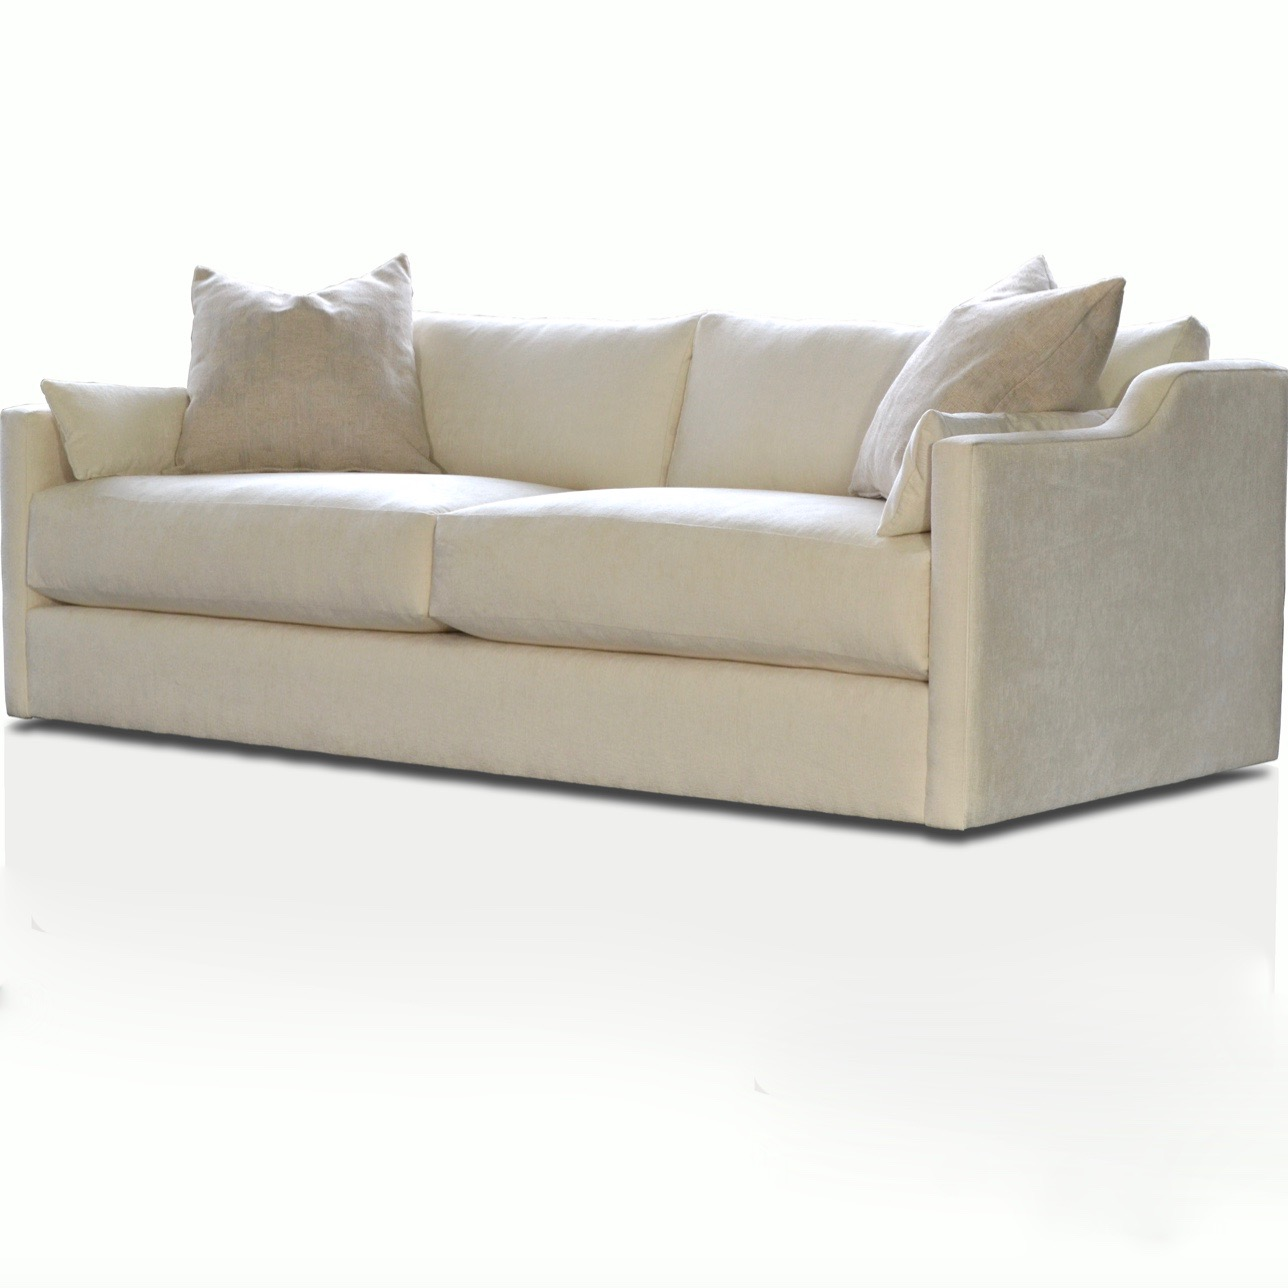 Quinn Sofa « Newport Coast Interior Design